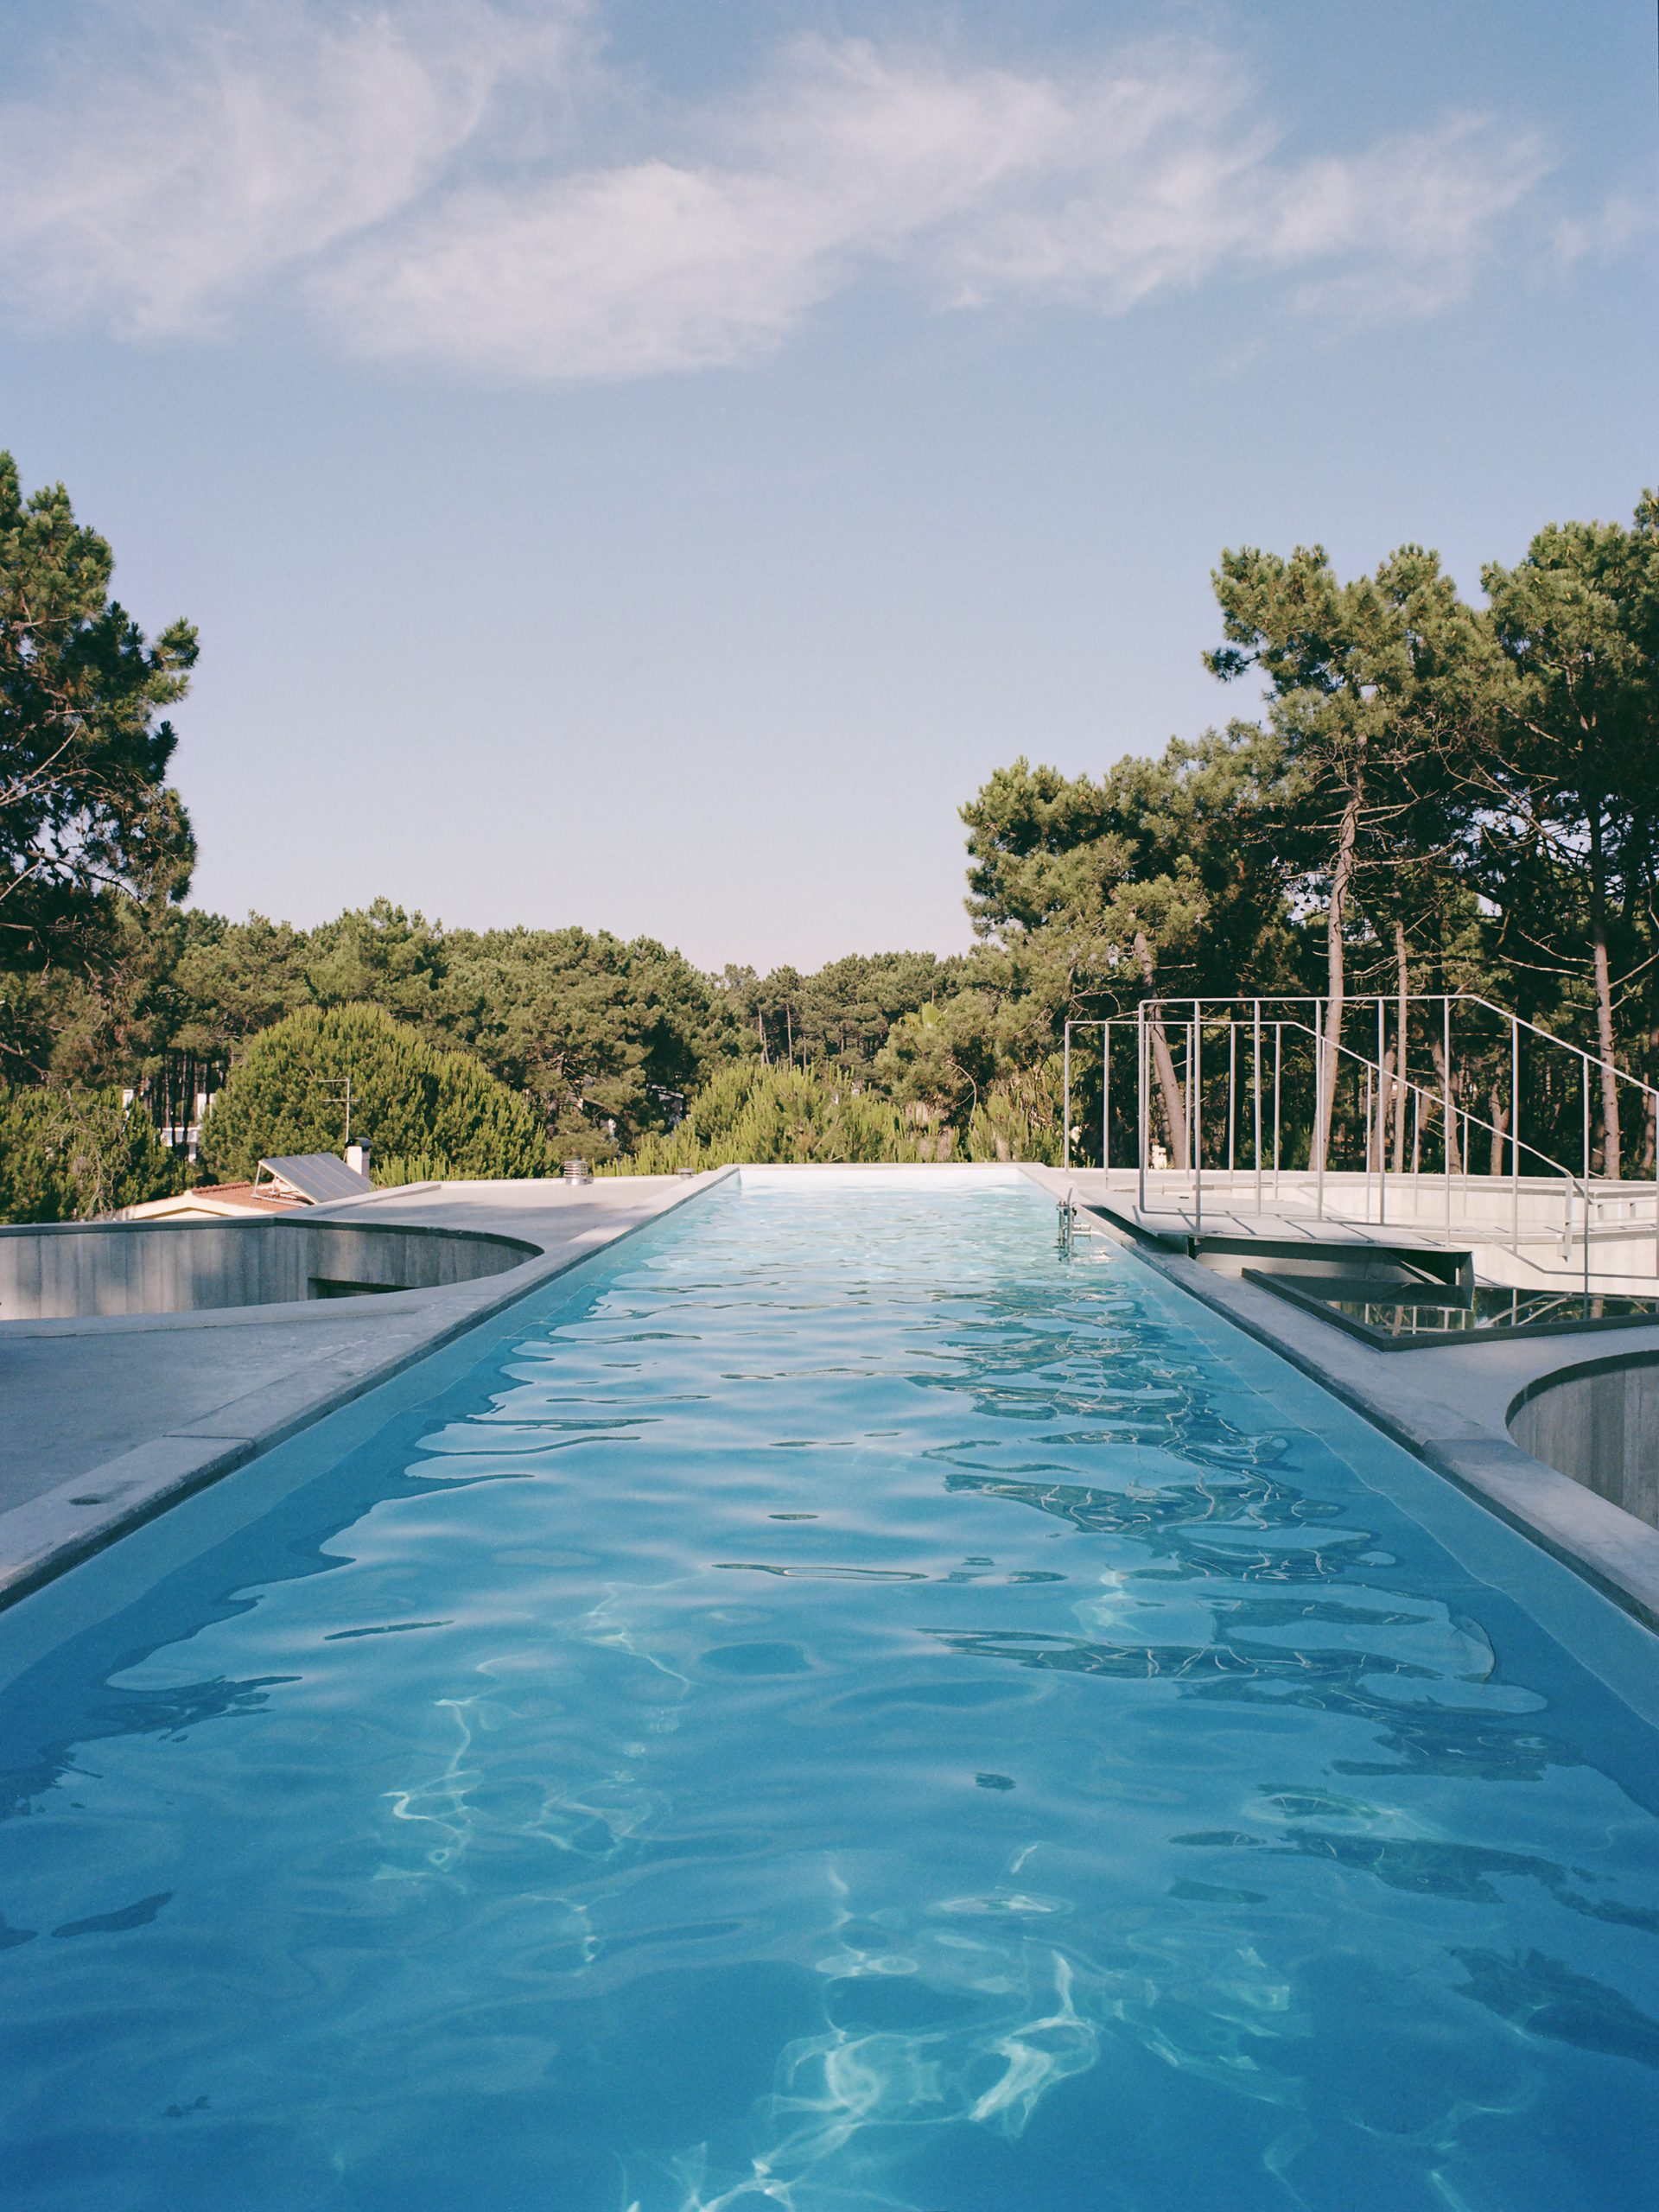 Rooftop swimming pool of Exterior of Trefoil House by Double O Studio